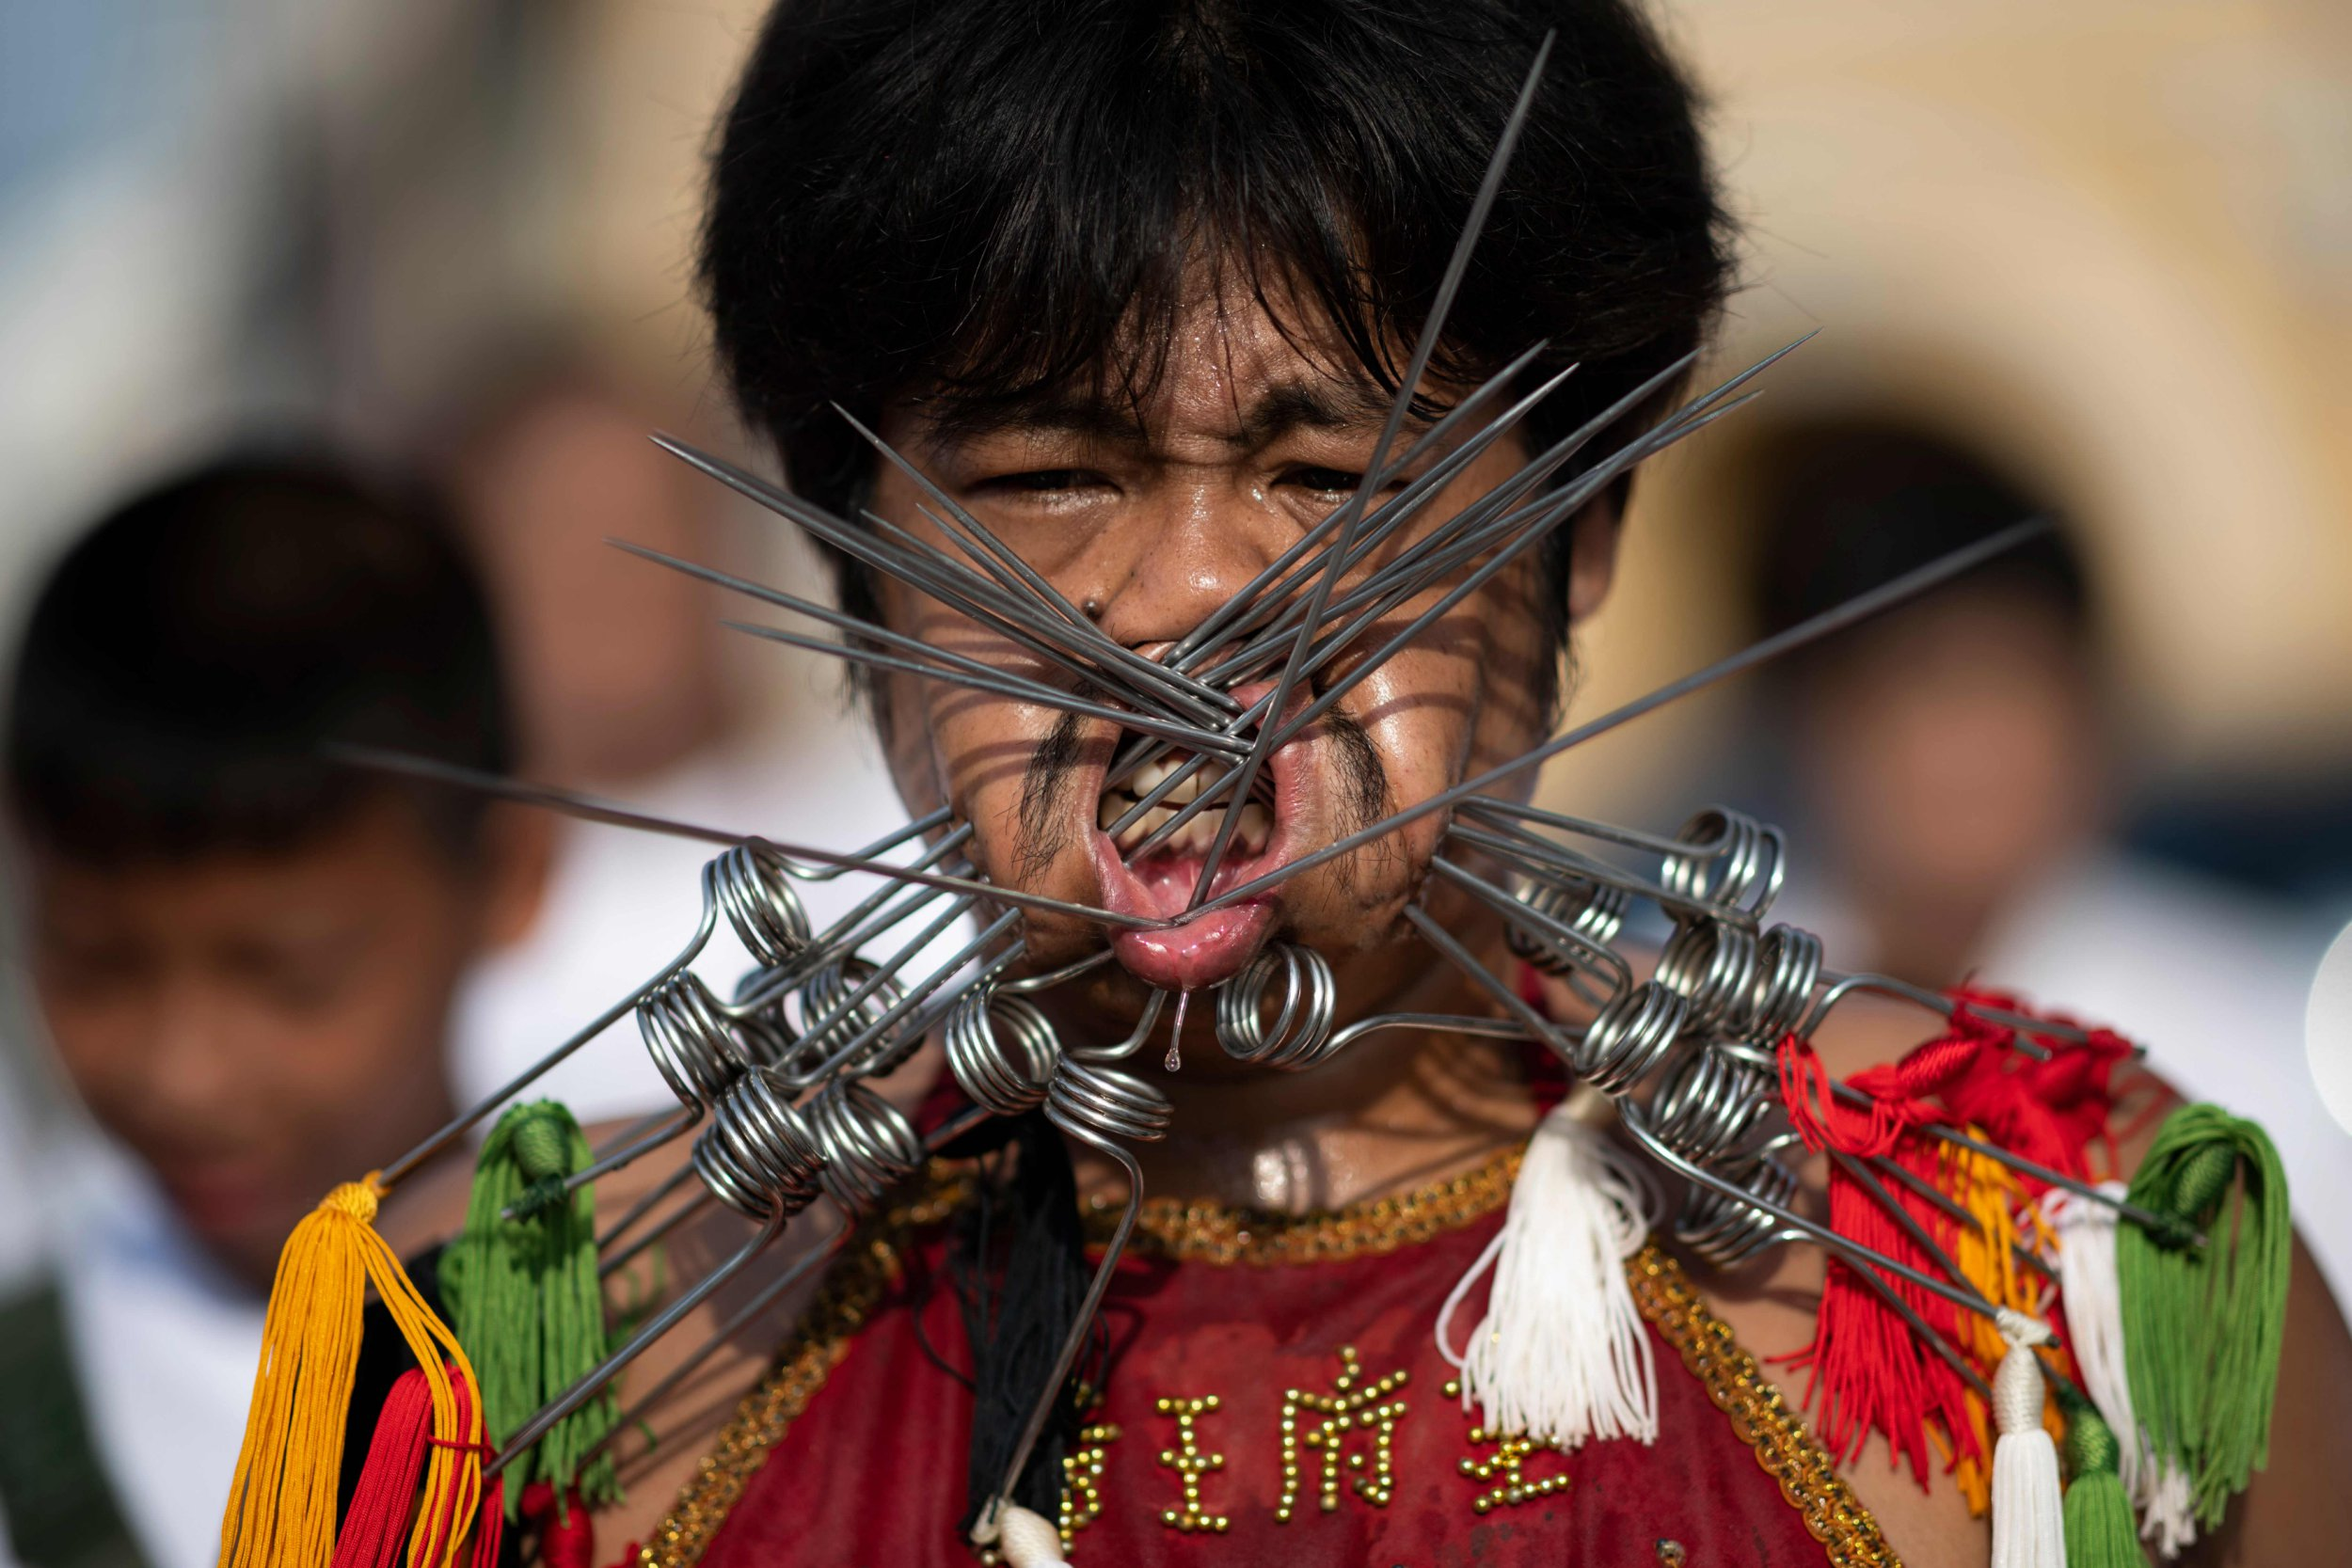 A devotee of the Loem Hu Thai Su shrine parades with multiple skewers pierced through his cheeks during the annual Vegetarian Festival in Phuket on October 12, 2018. - The festival begins on the first evening of the ninth lunar month and lasts for nine days, with many religious devotees slashing themselves with swords, piercing their cheeks with sharp objects and committing other painful acts to purify themselves, taking on the sins of the community. (Photo by Jewel SAMAD / AFP)JEWEL SAMAD/AFP/Getty Images